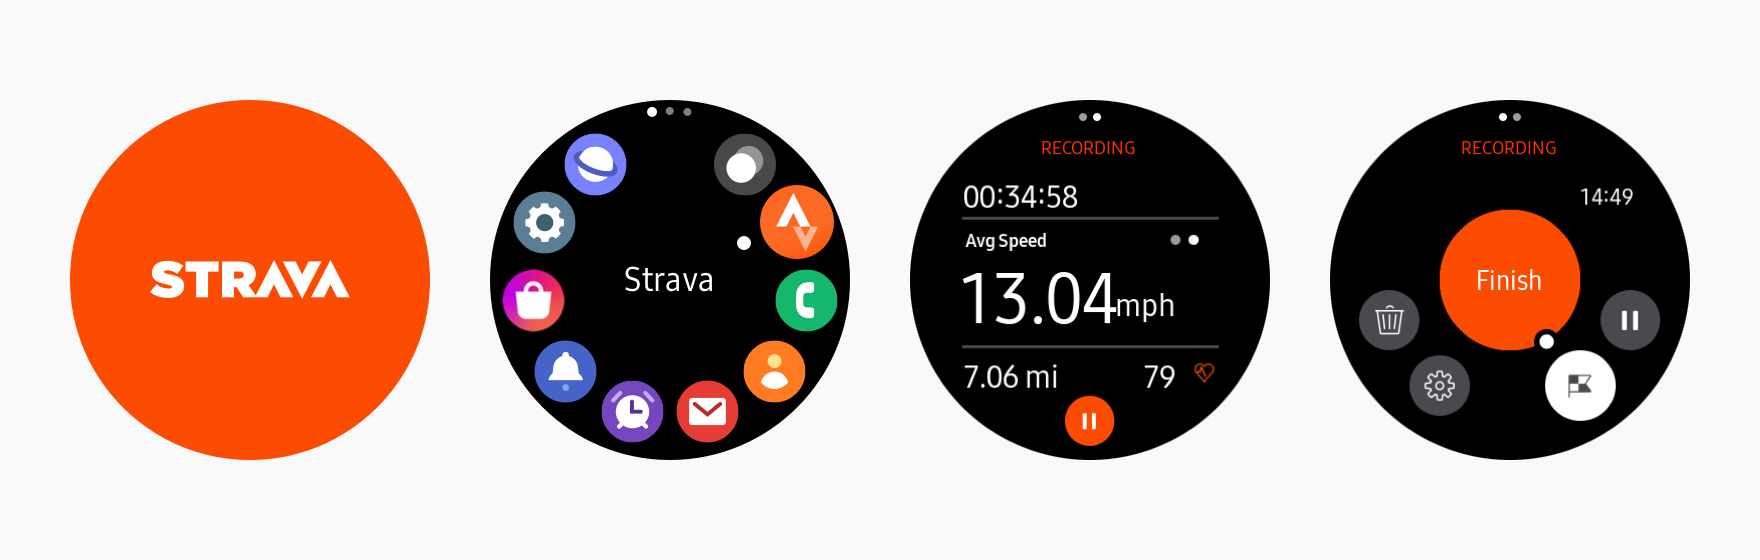 Strava lets users track, analyze, share, and explore their running and biking activities. It uses the company's orange brand color and white in a balanced and consistent way. The company's brand color is used consistently throughout the app to express the brand identity.